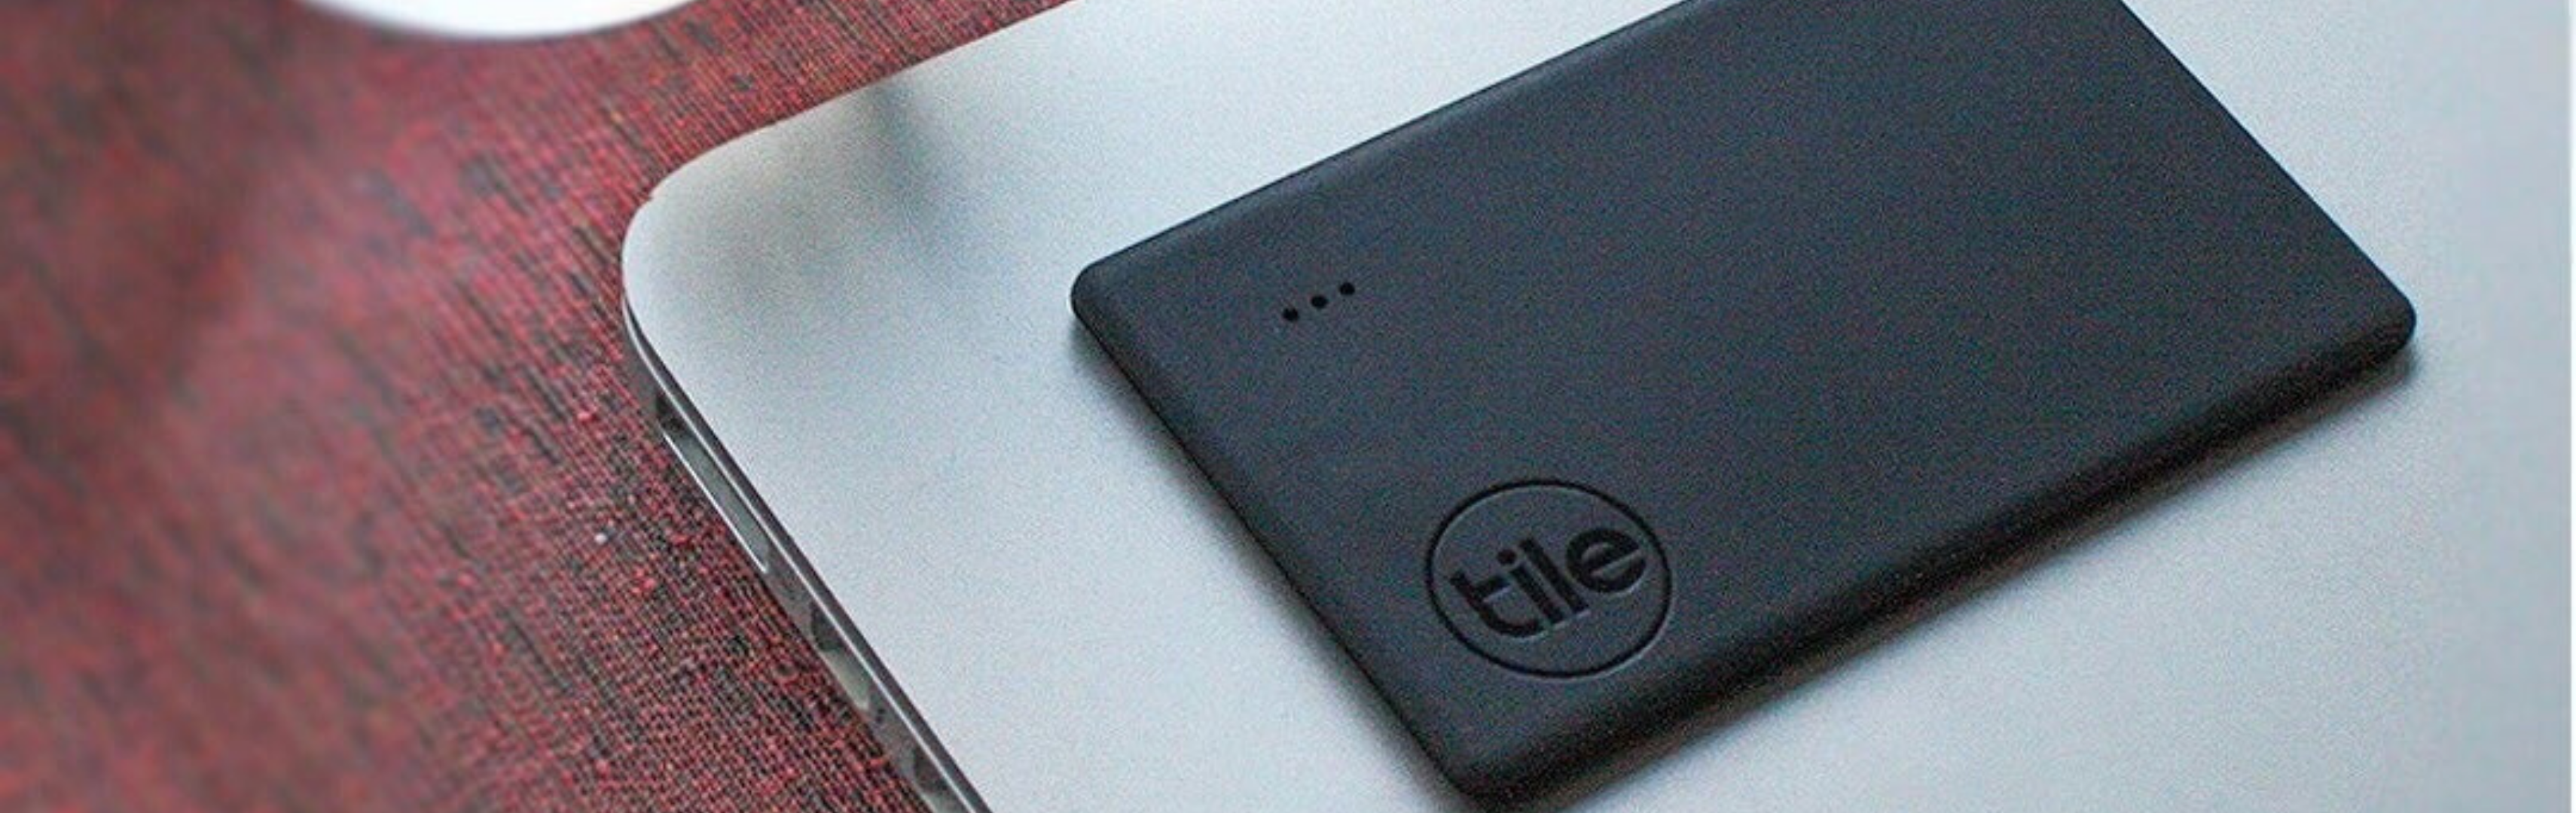 Want to find your laptop? Try this laptop tracker from Tile.